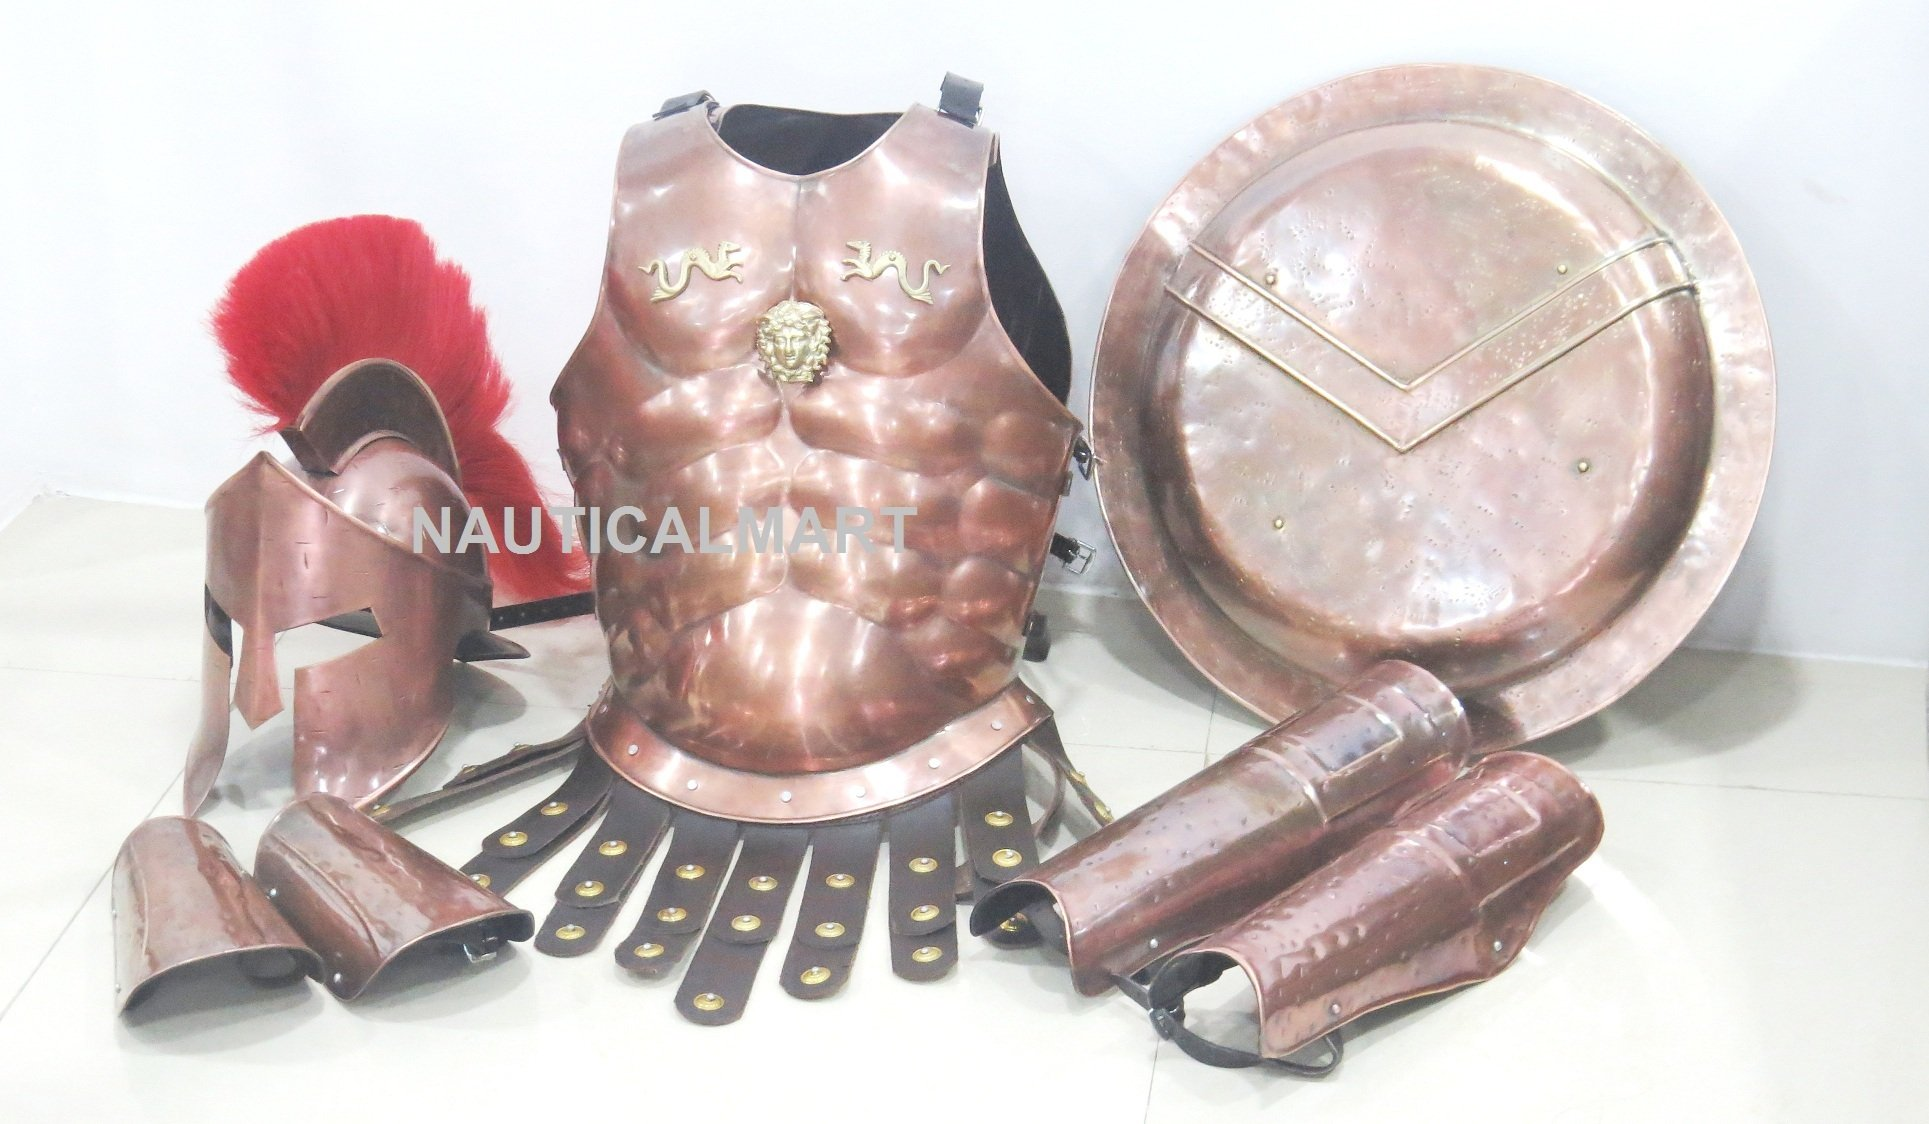 Medieval Spartan Copper 300 Helmet W/ Red Plume Muscle Armor by Nauticalmart by NAUTICALMART (Image #1)